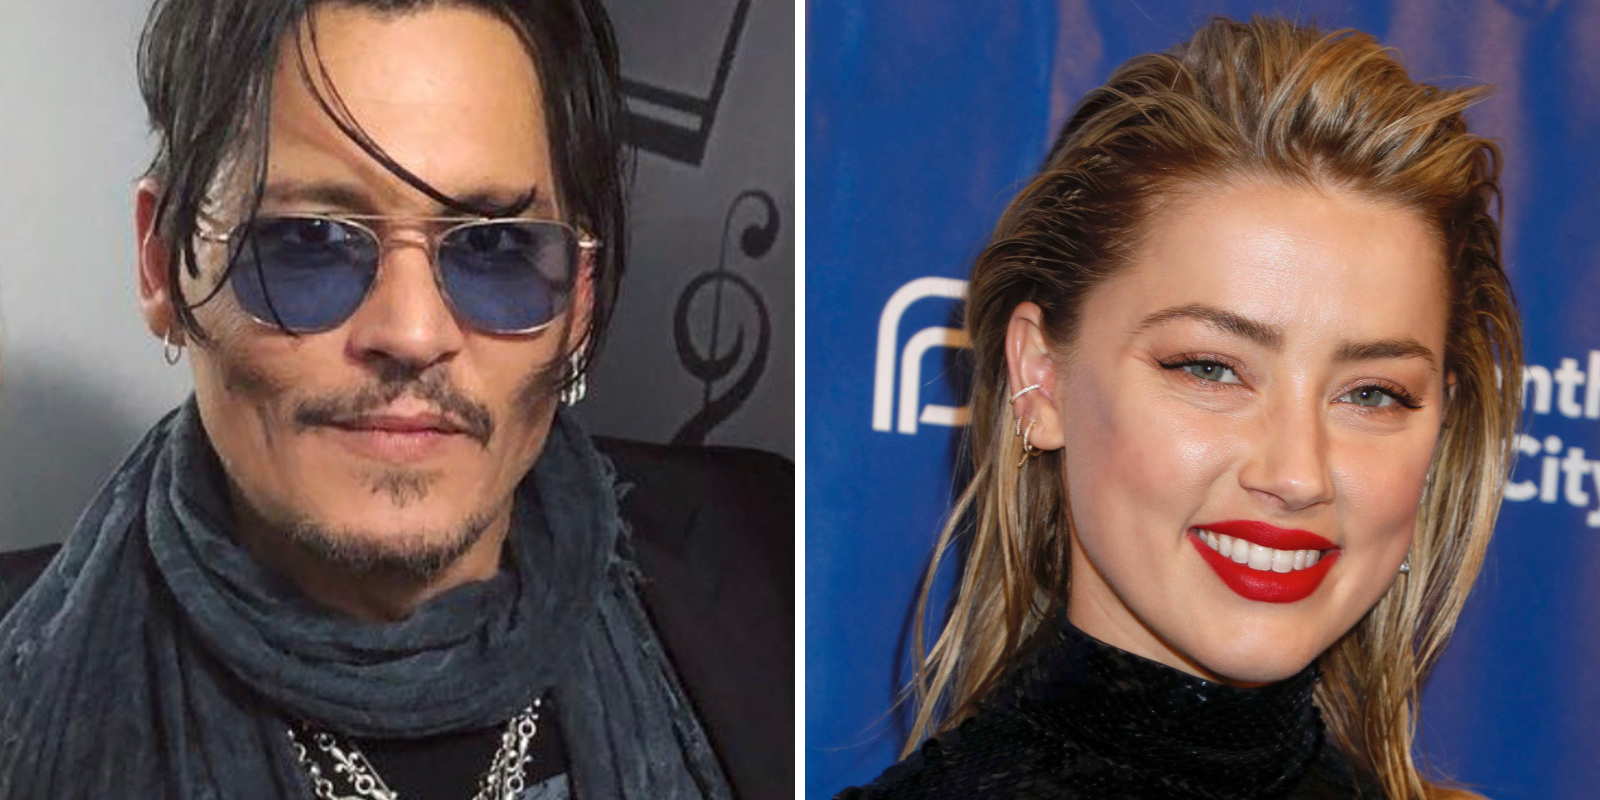 Another #MeToo fraud: Amber Heard assaulted and abused Johnny Depp